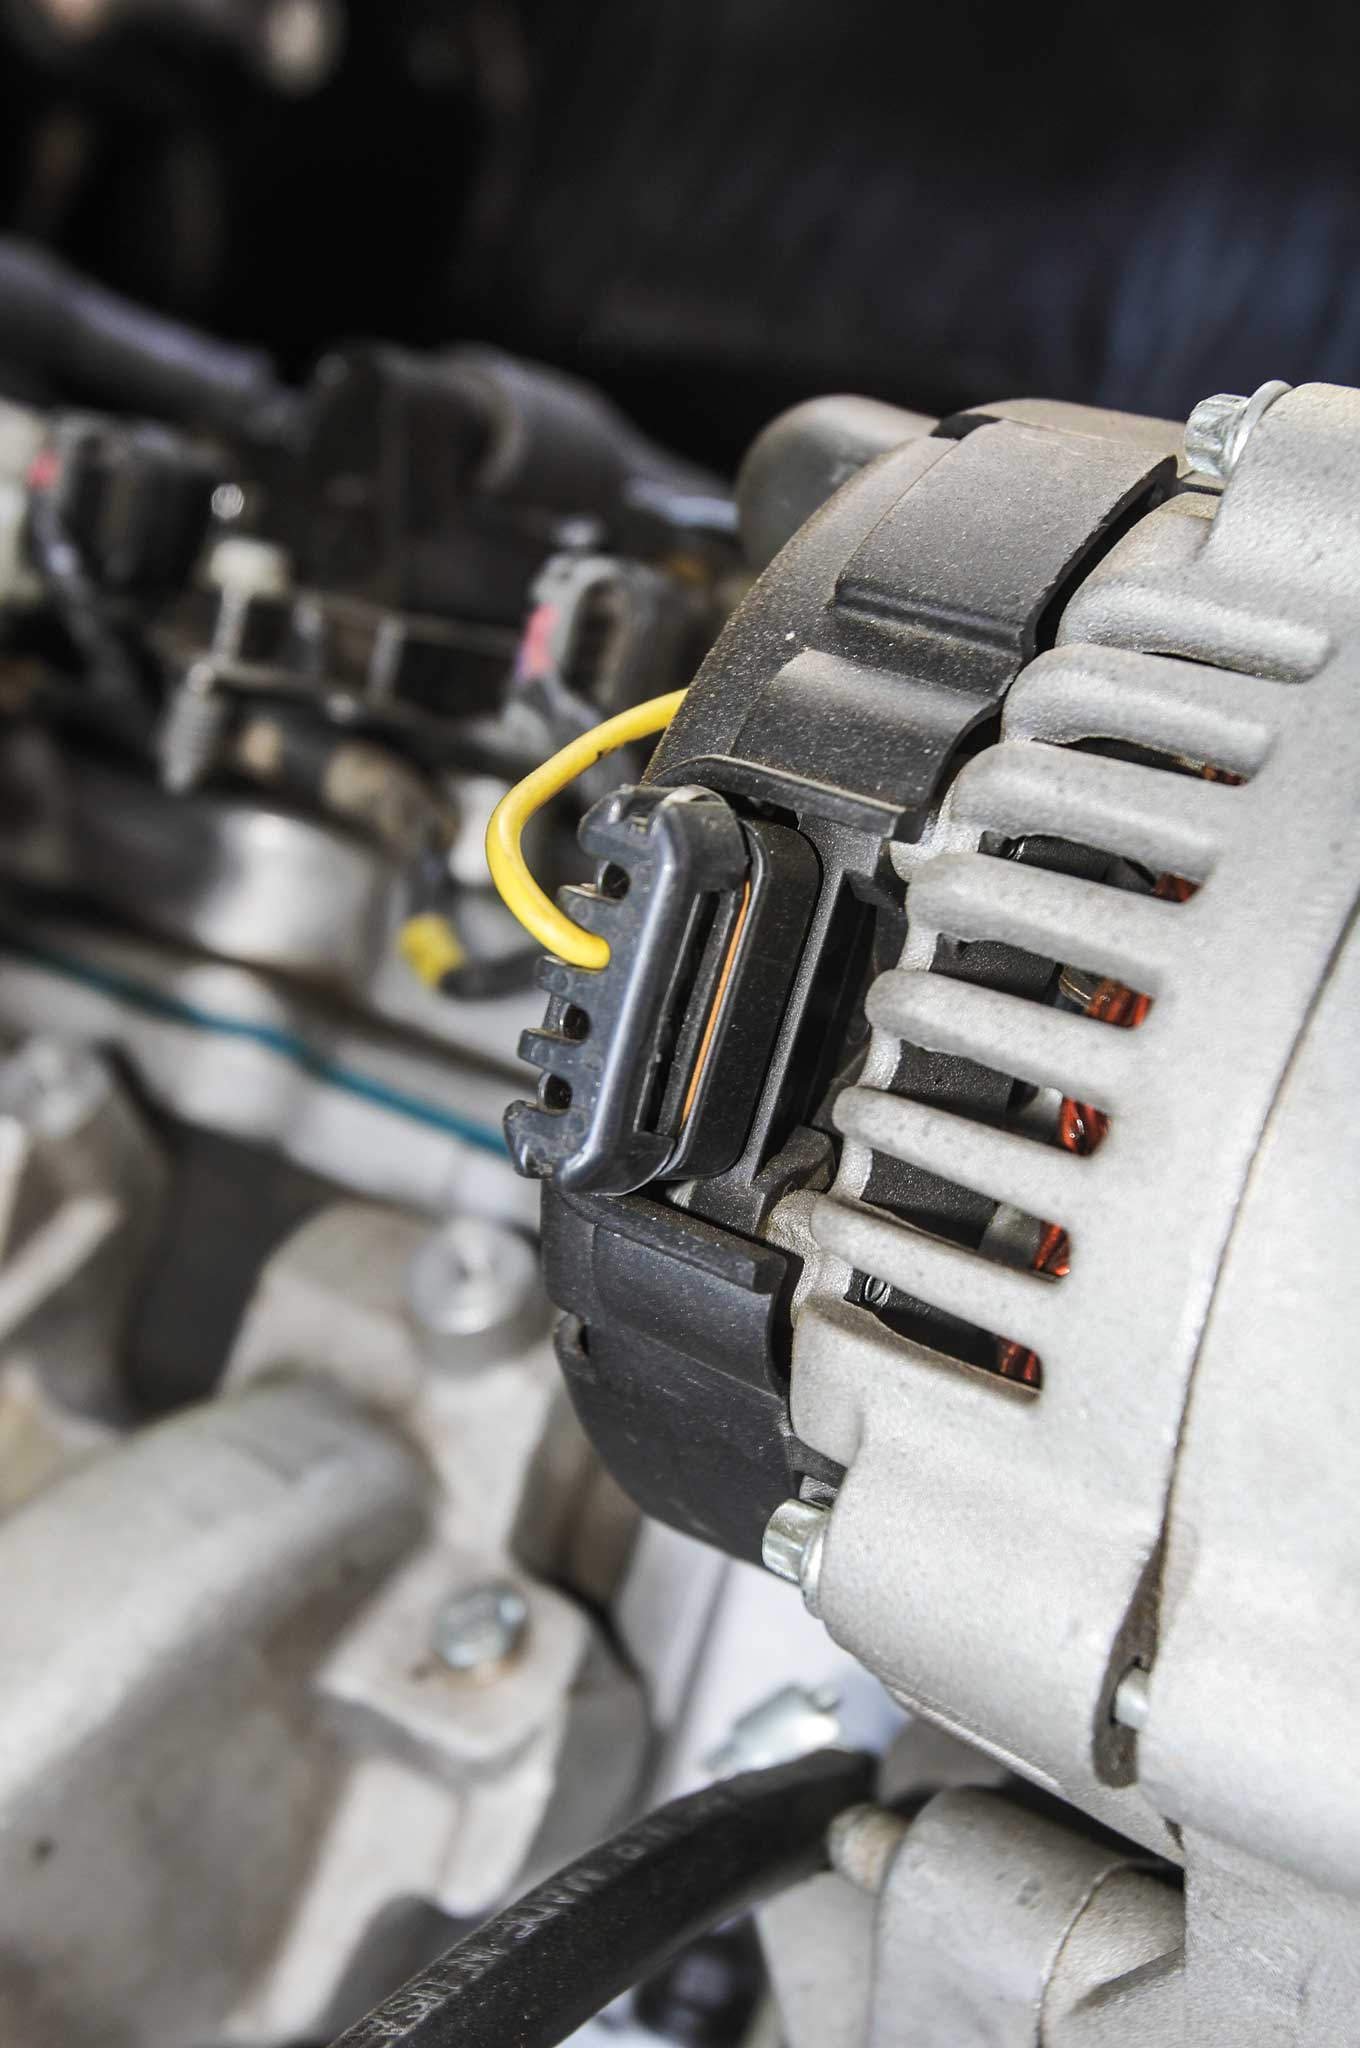 Details And Tips To Make Your Ls Engine Conversion Easy Coil Wiring All Gm Gen Iii Iv Engines Use The Cs130d Alternator With Its Unique Connector Wire This Into A 60s Vehicle Painless Performance